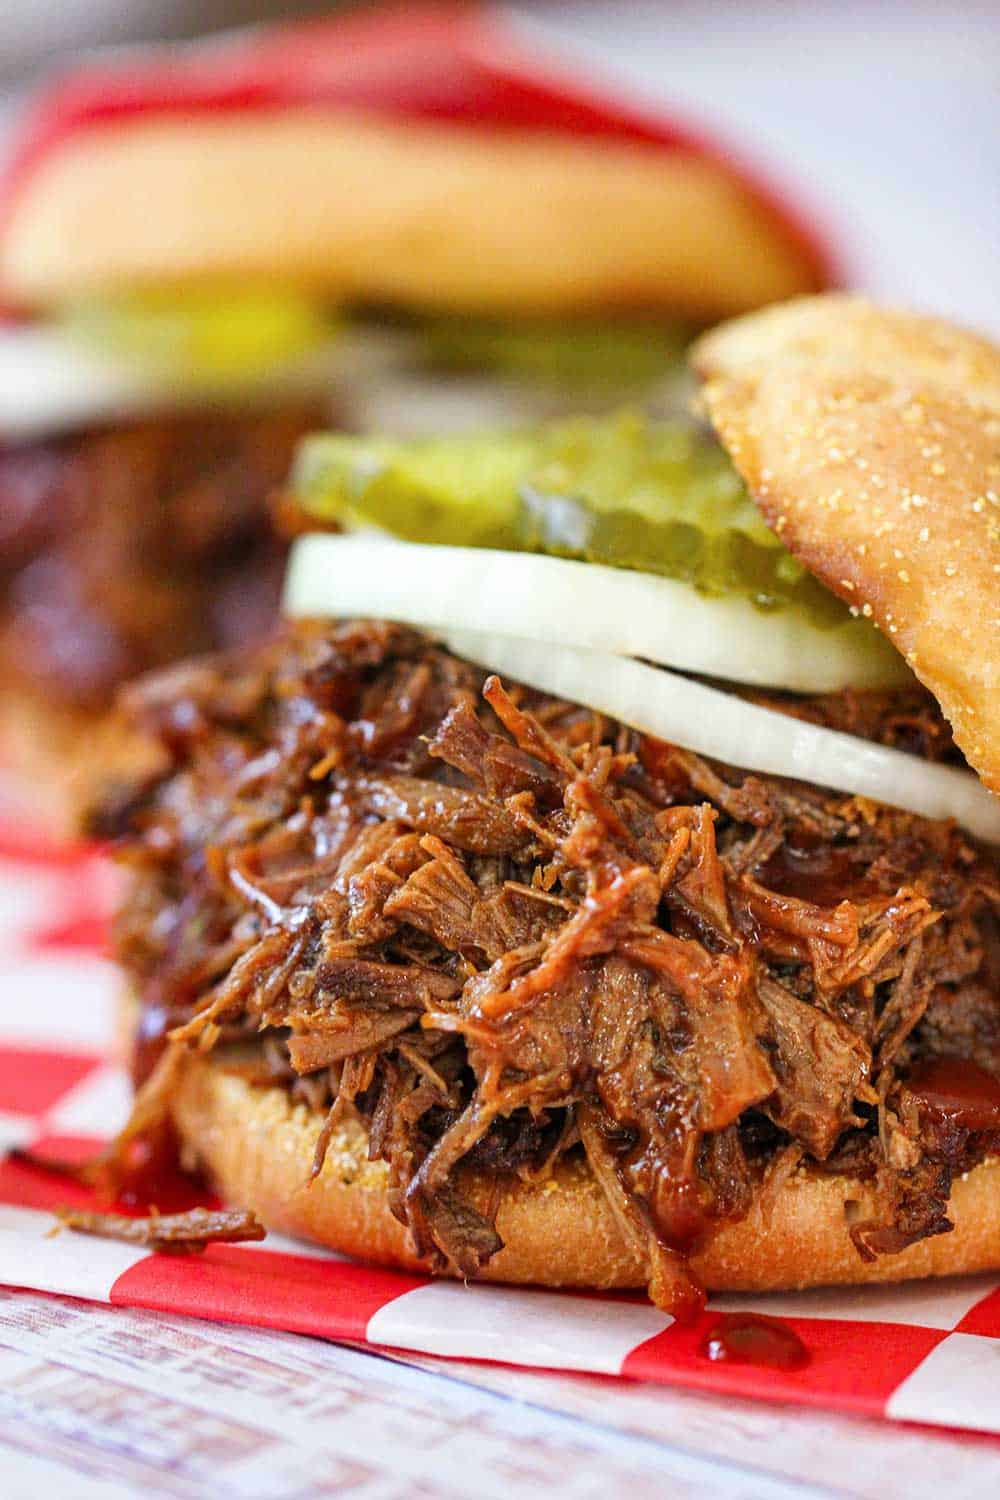 A close-up view of a slow-cooker BBQ brisket sandwich with a sliced onion and pickles on a checkered cloth.